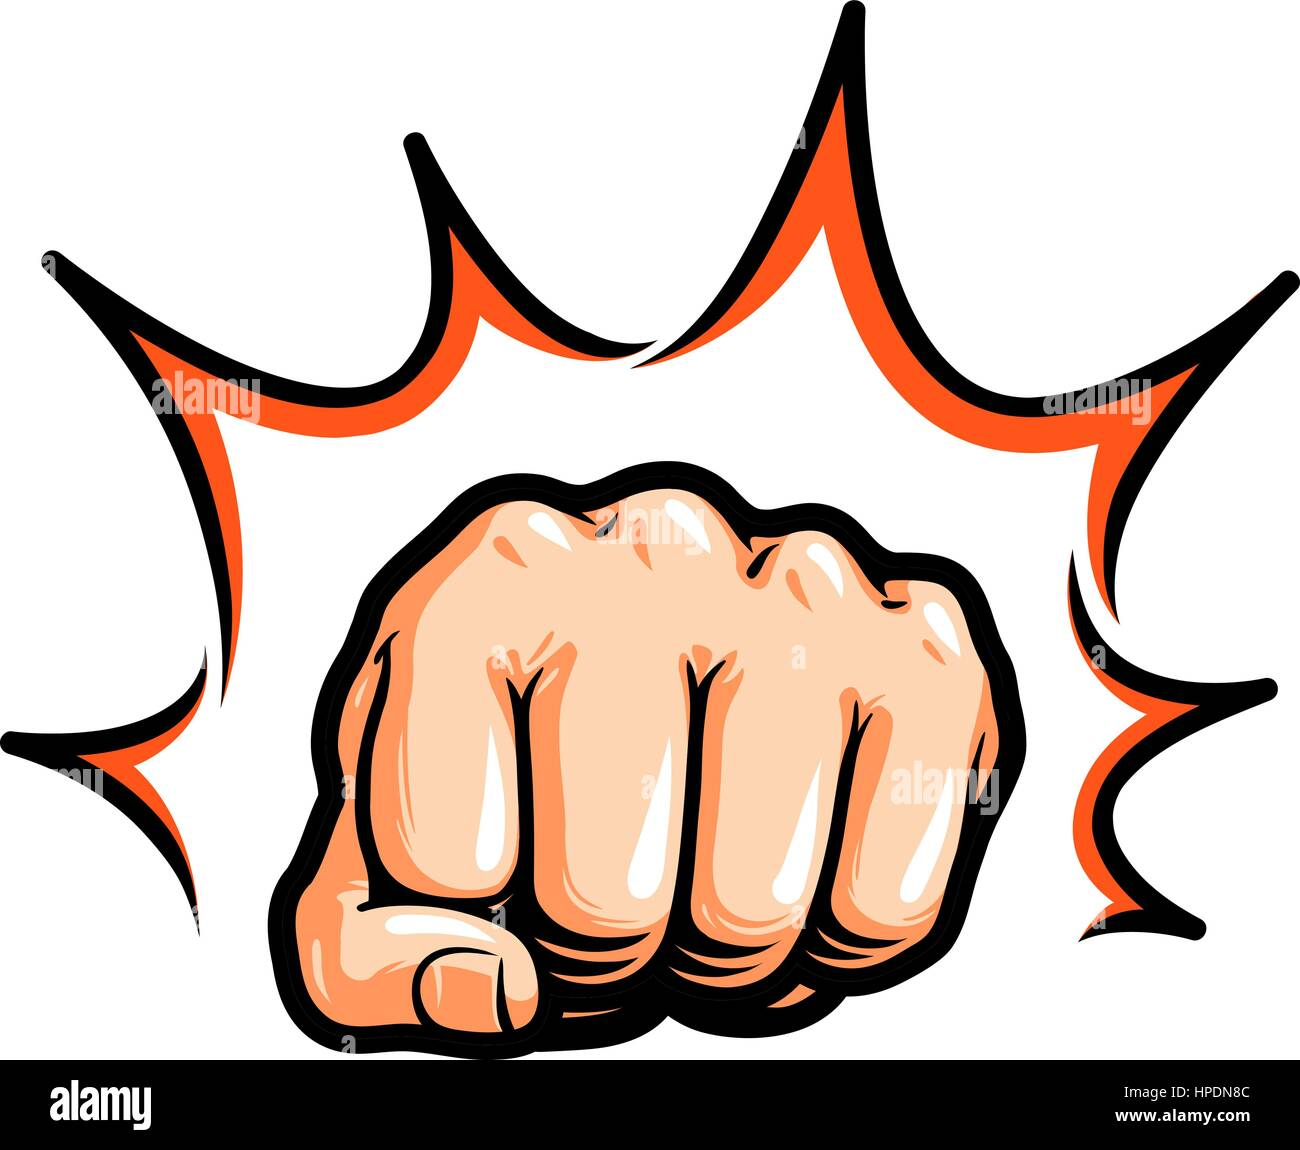 hand fist punching or hitting comic pop art symbol vector stock